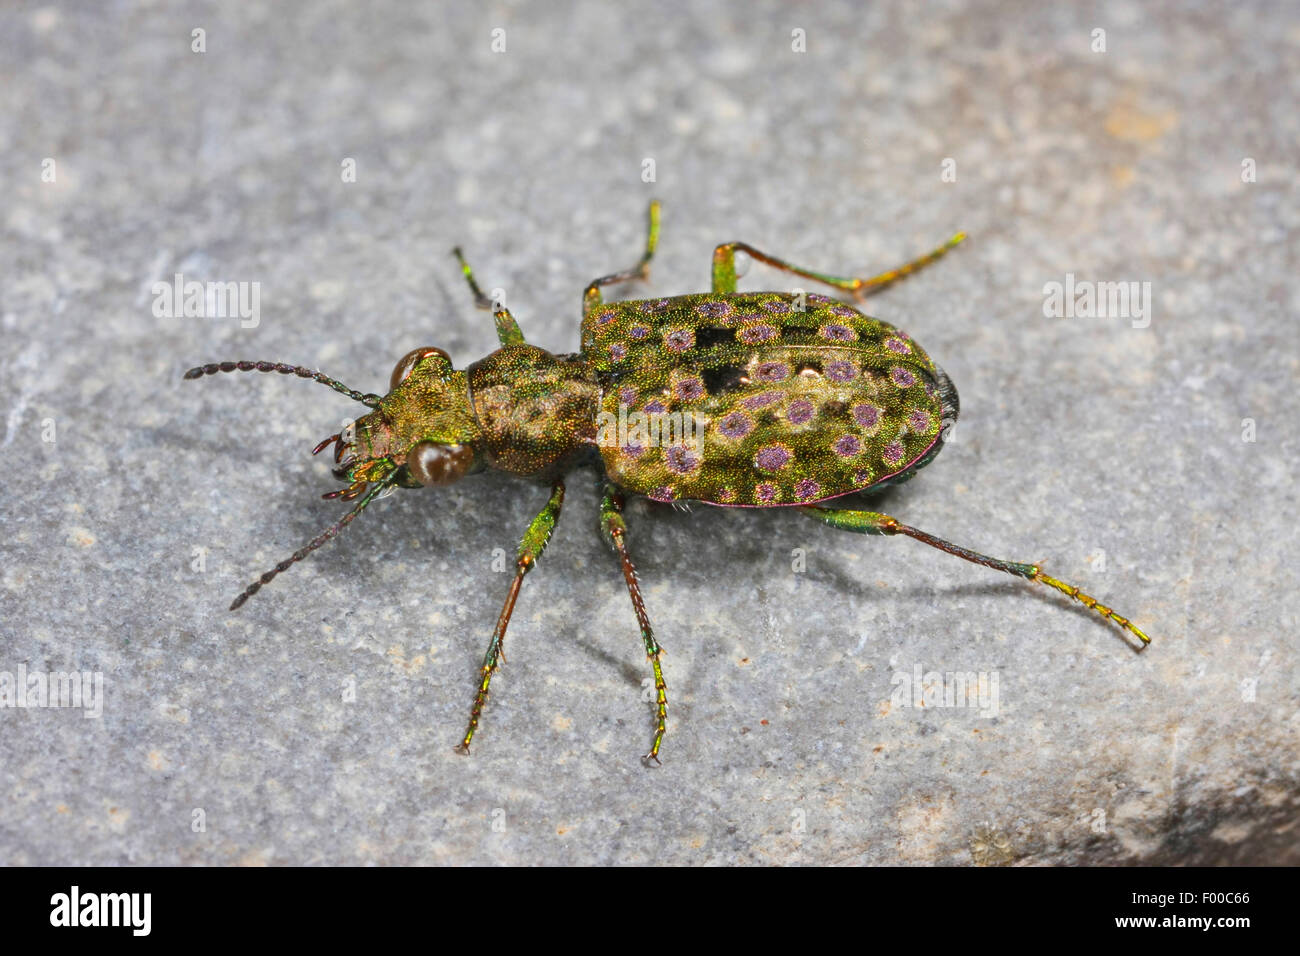 Lesser wetland ground beetles (Elaphrus riparius, Trichelaphrus riparius), on a stone, Germany - Stock Image